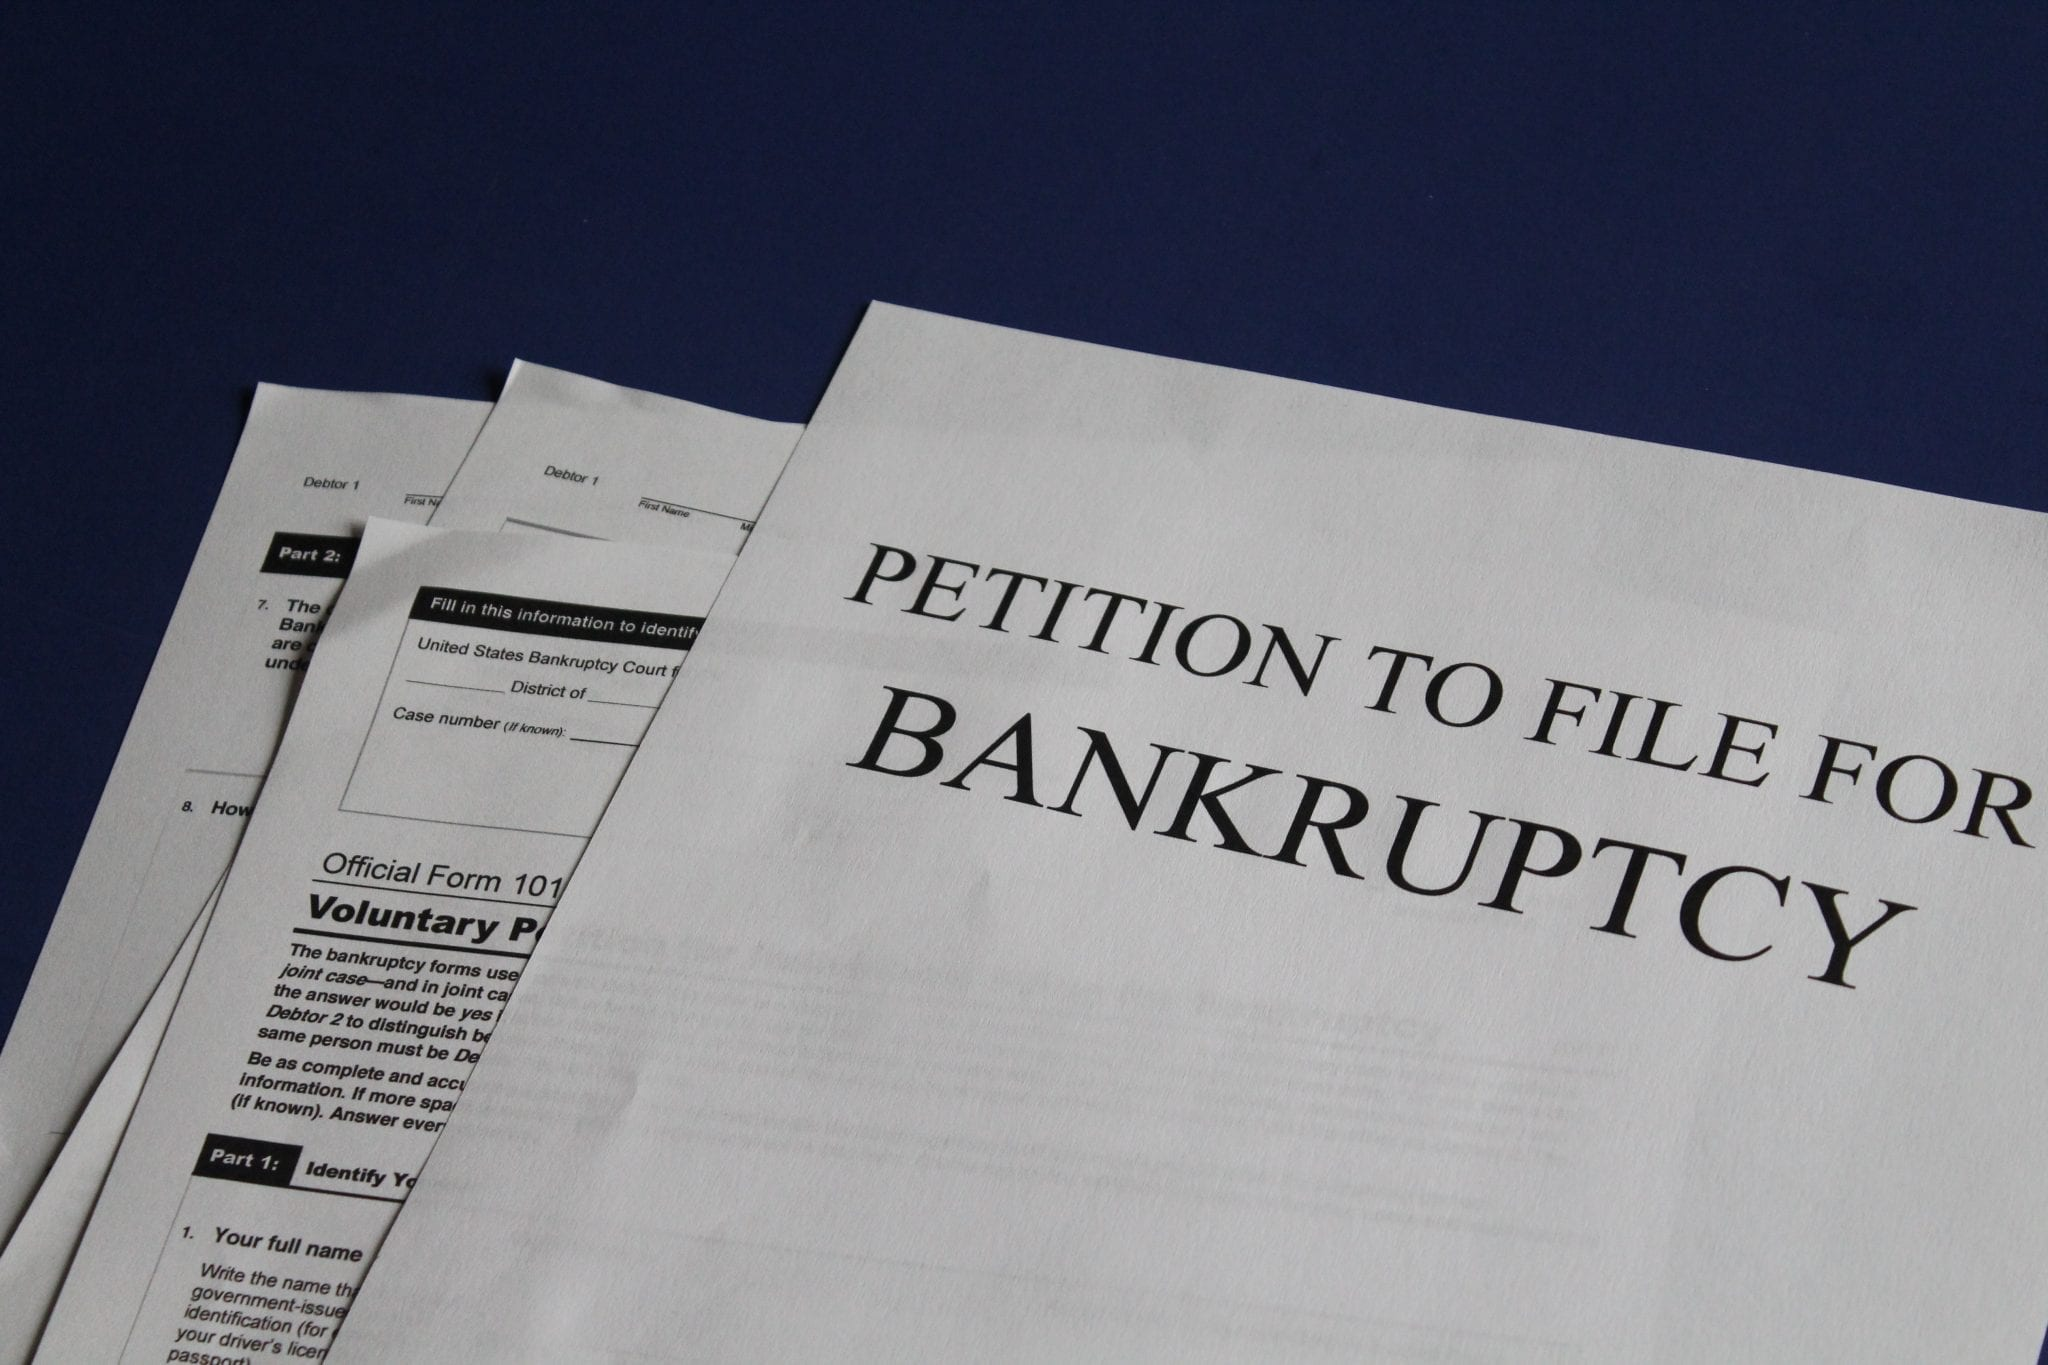 Petition to file for bankruptcy; image by Melinda Gimpel, via Unsplash.com.